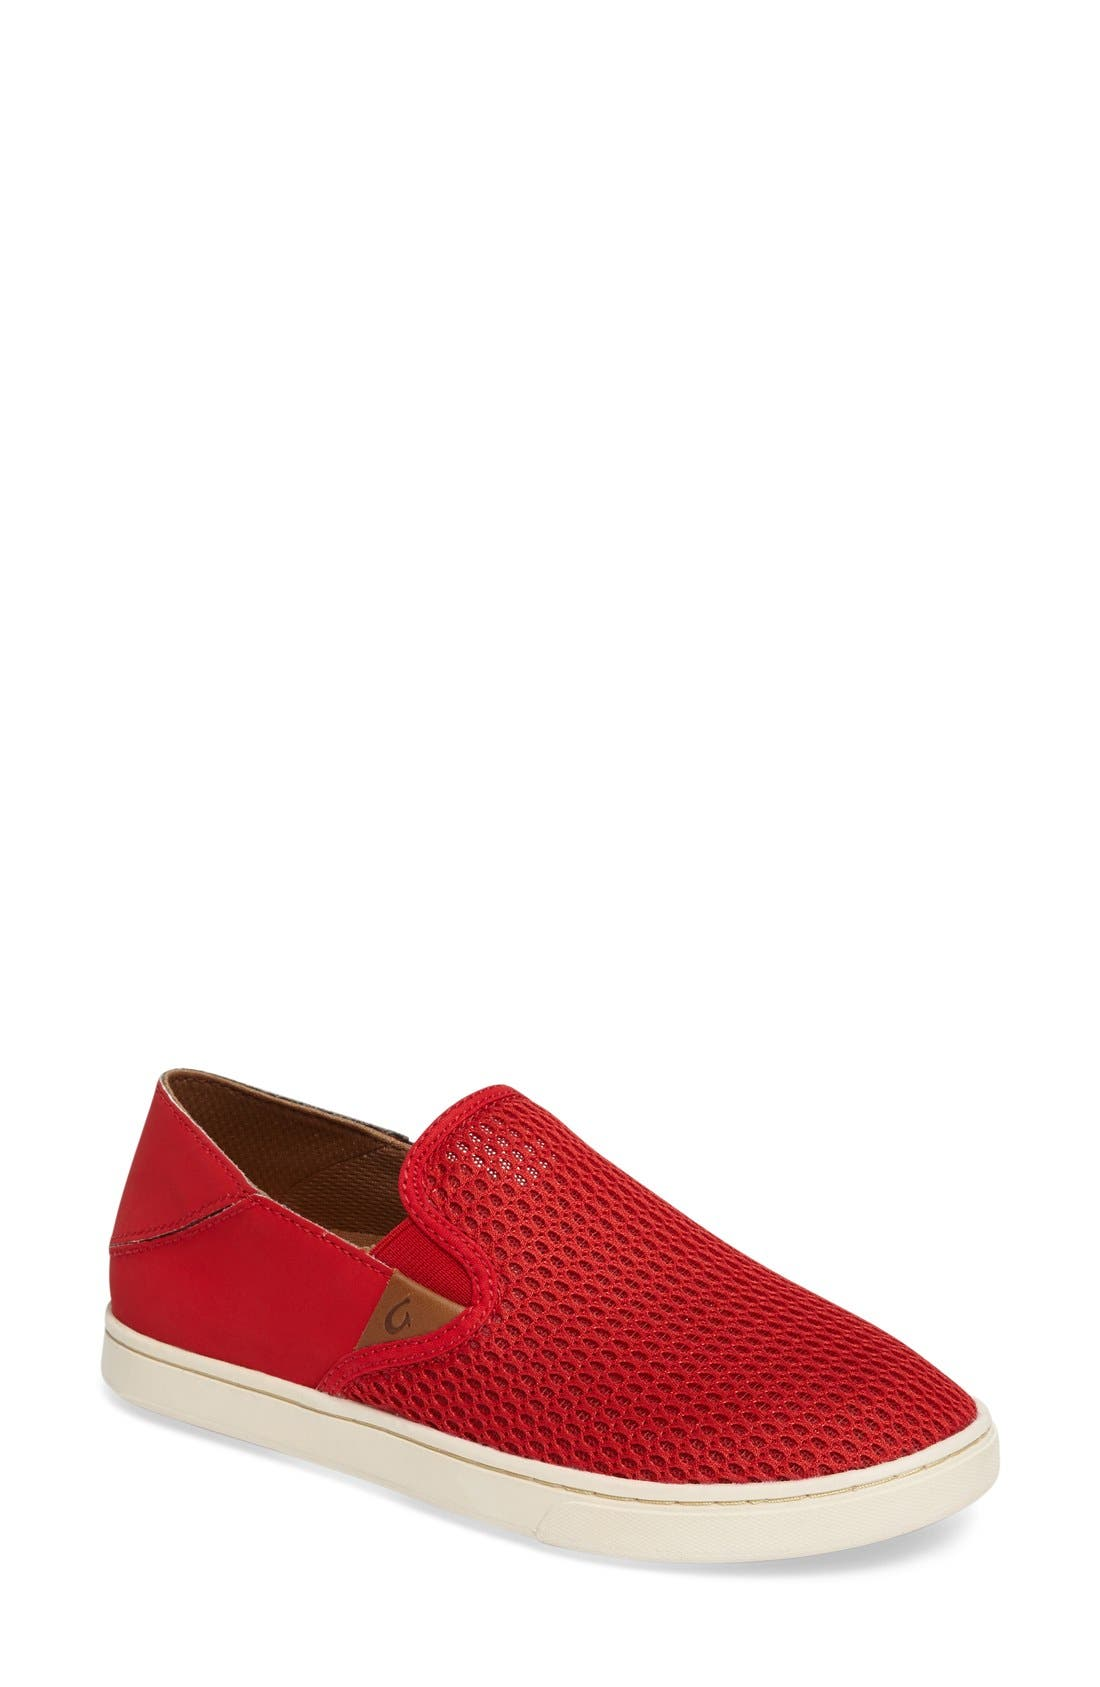 Main Image - OluKai 'Pehuea' Slip-On Sneaker (Women)